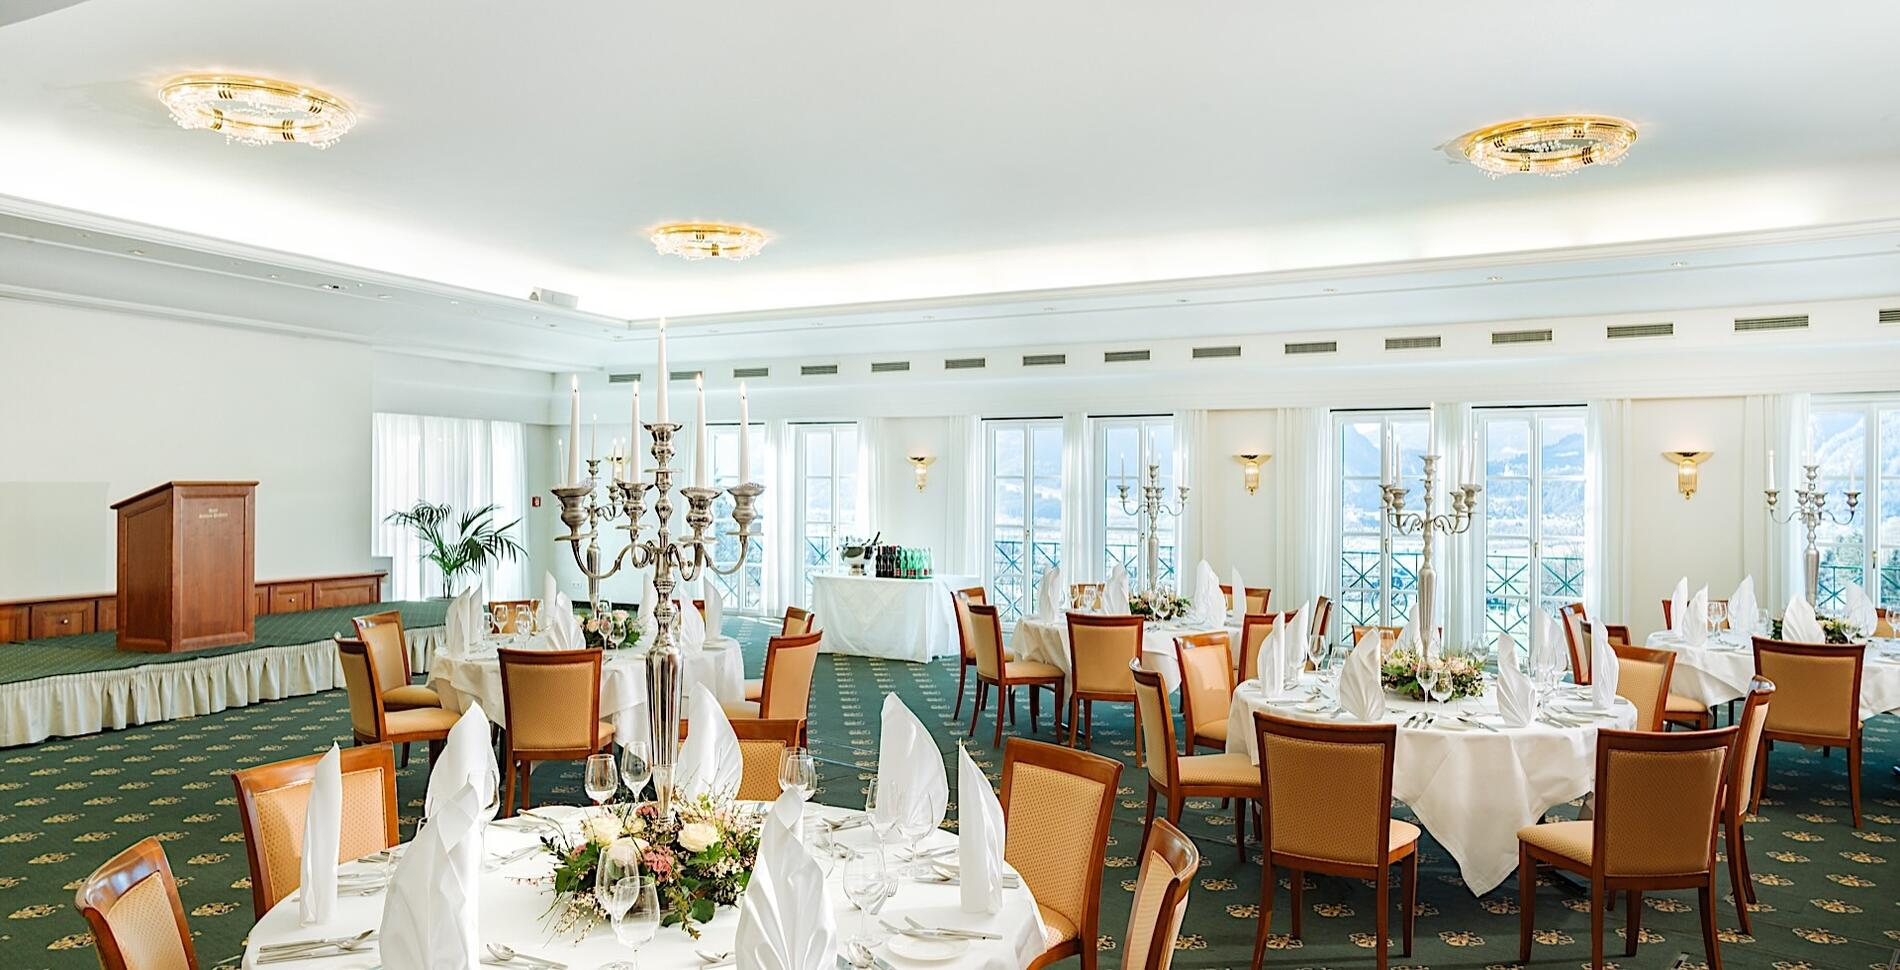 Function Room Grimming I at Romantik Hotel Schloss Pichlarn, Aus